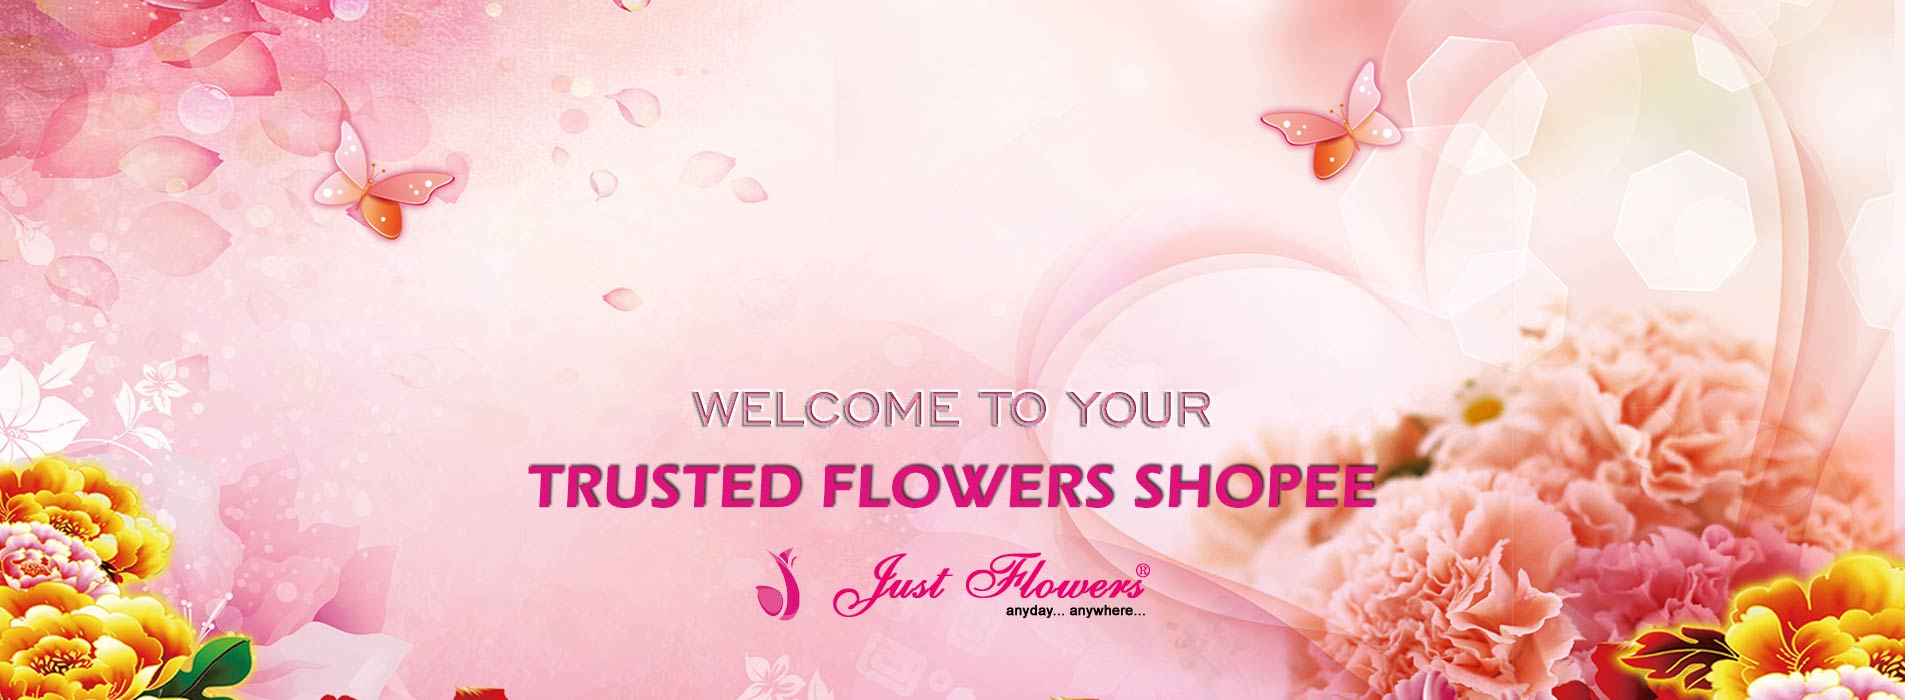 Just Flowers Online Flowers Delivery In India Florist In India